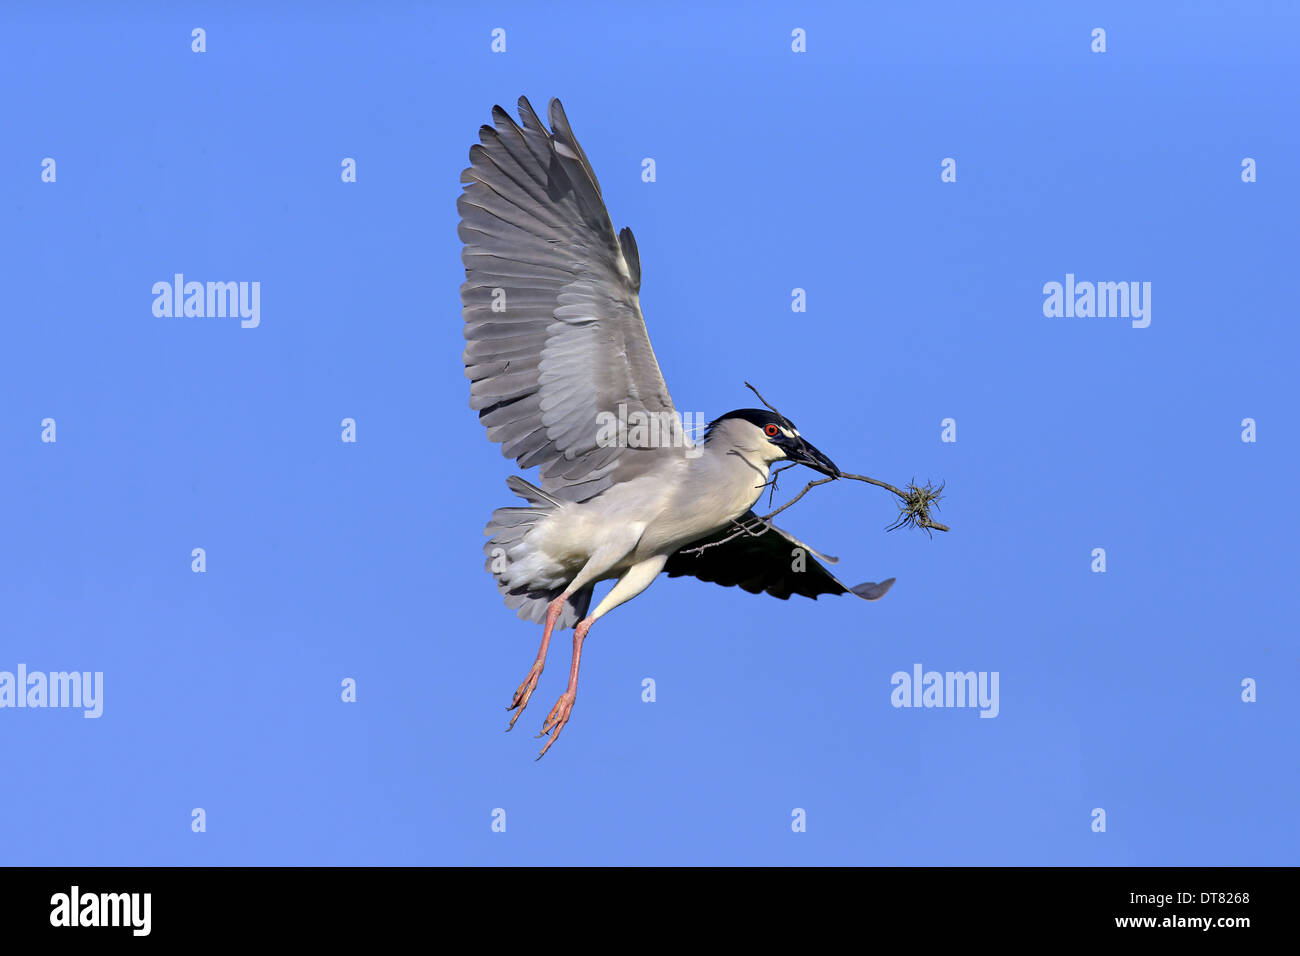 Night heron in flight - photo#46